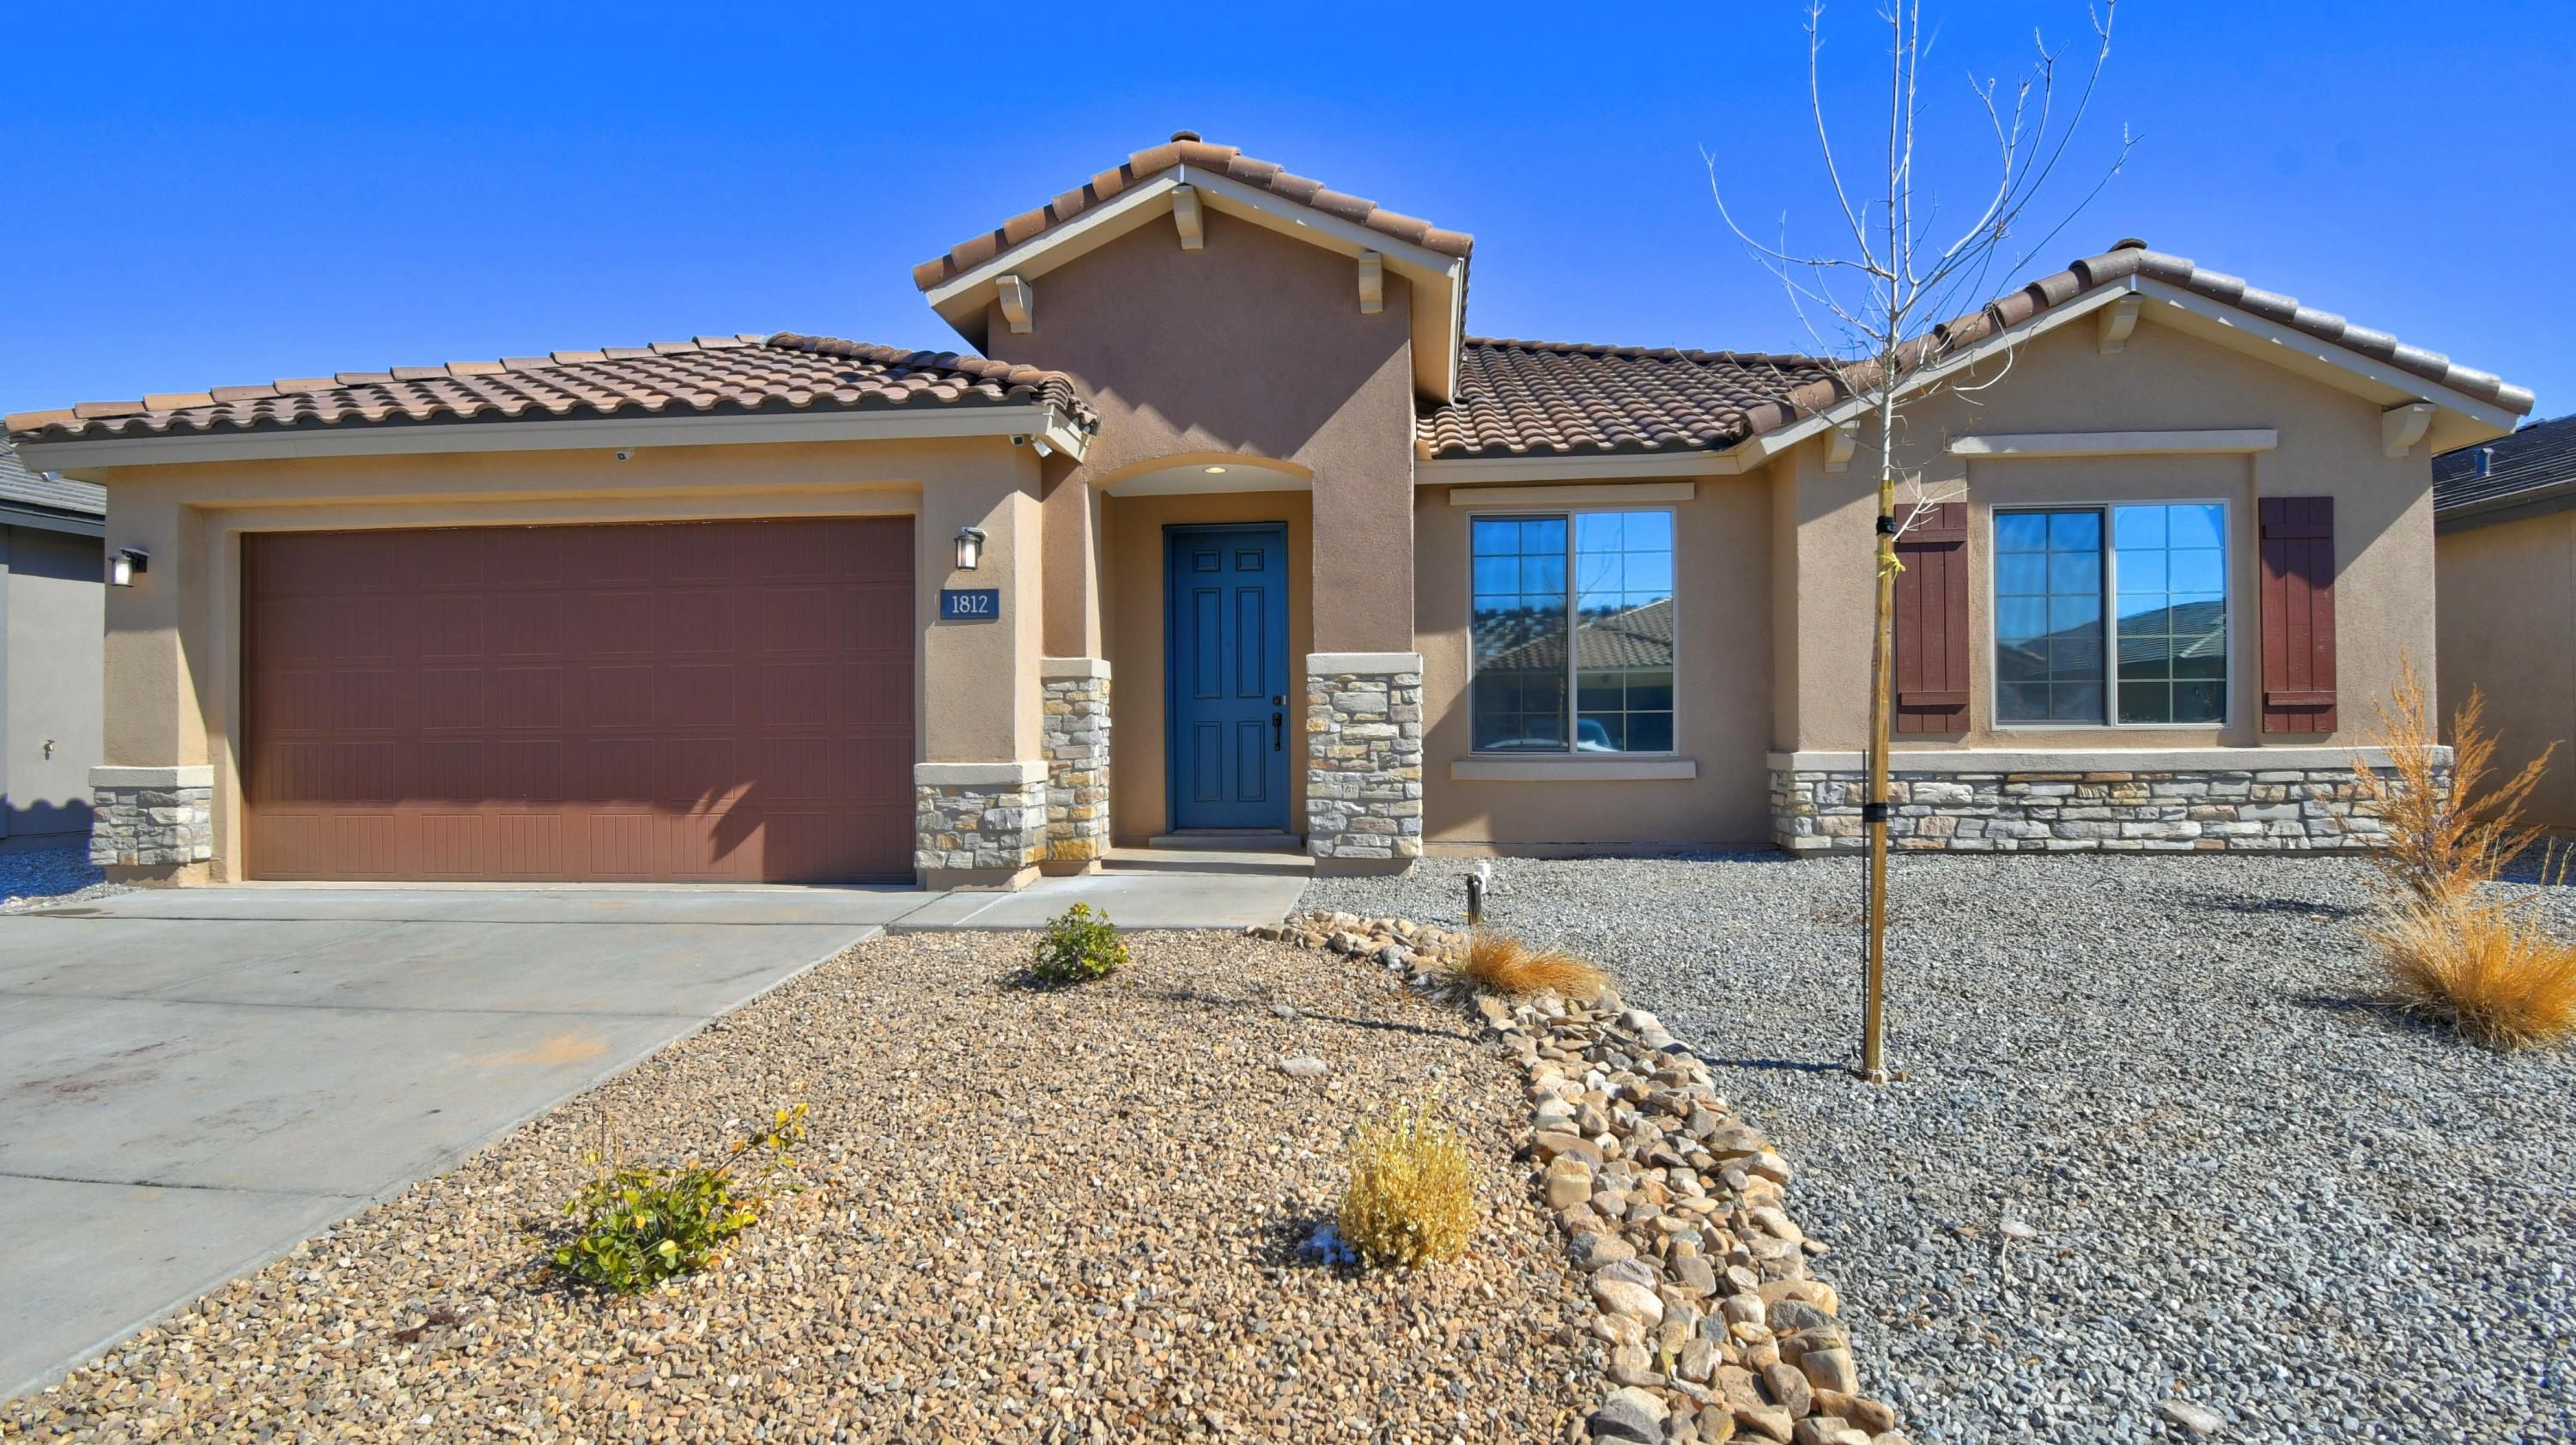 Stunning single level Pulte home in the desirable Volterra community less than a year old with upgrades galore!  The curb appeal of this home greets you immediately and you know you're walking into pure luxury in a functional floor plan!  This home has space for everyone with so many extra spaces including a study/den, the Pulte planning center office area, and a flex space between the spare bedrooms that can be used for so many things!  The cool gray tones in this home give you that modern feel and Quartz counters, chef's kitchen, tray ceiling, and gorgeous ceramic tile complete this home to make it the whole package.  This is a MUST SEE!